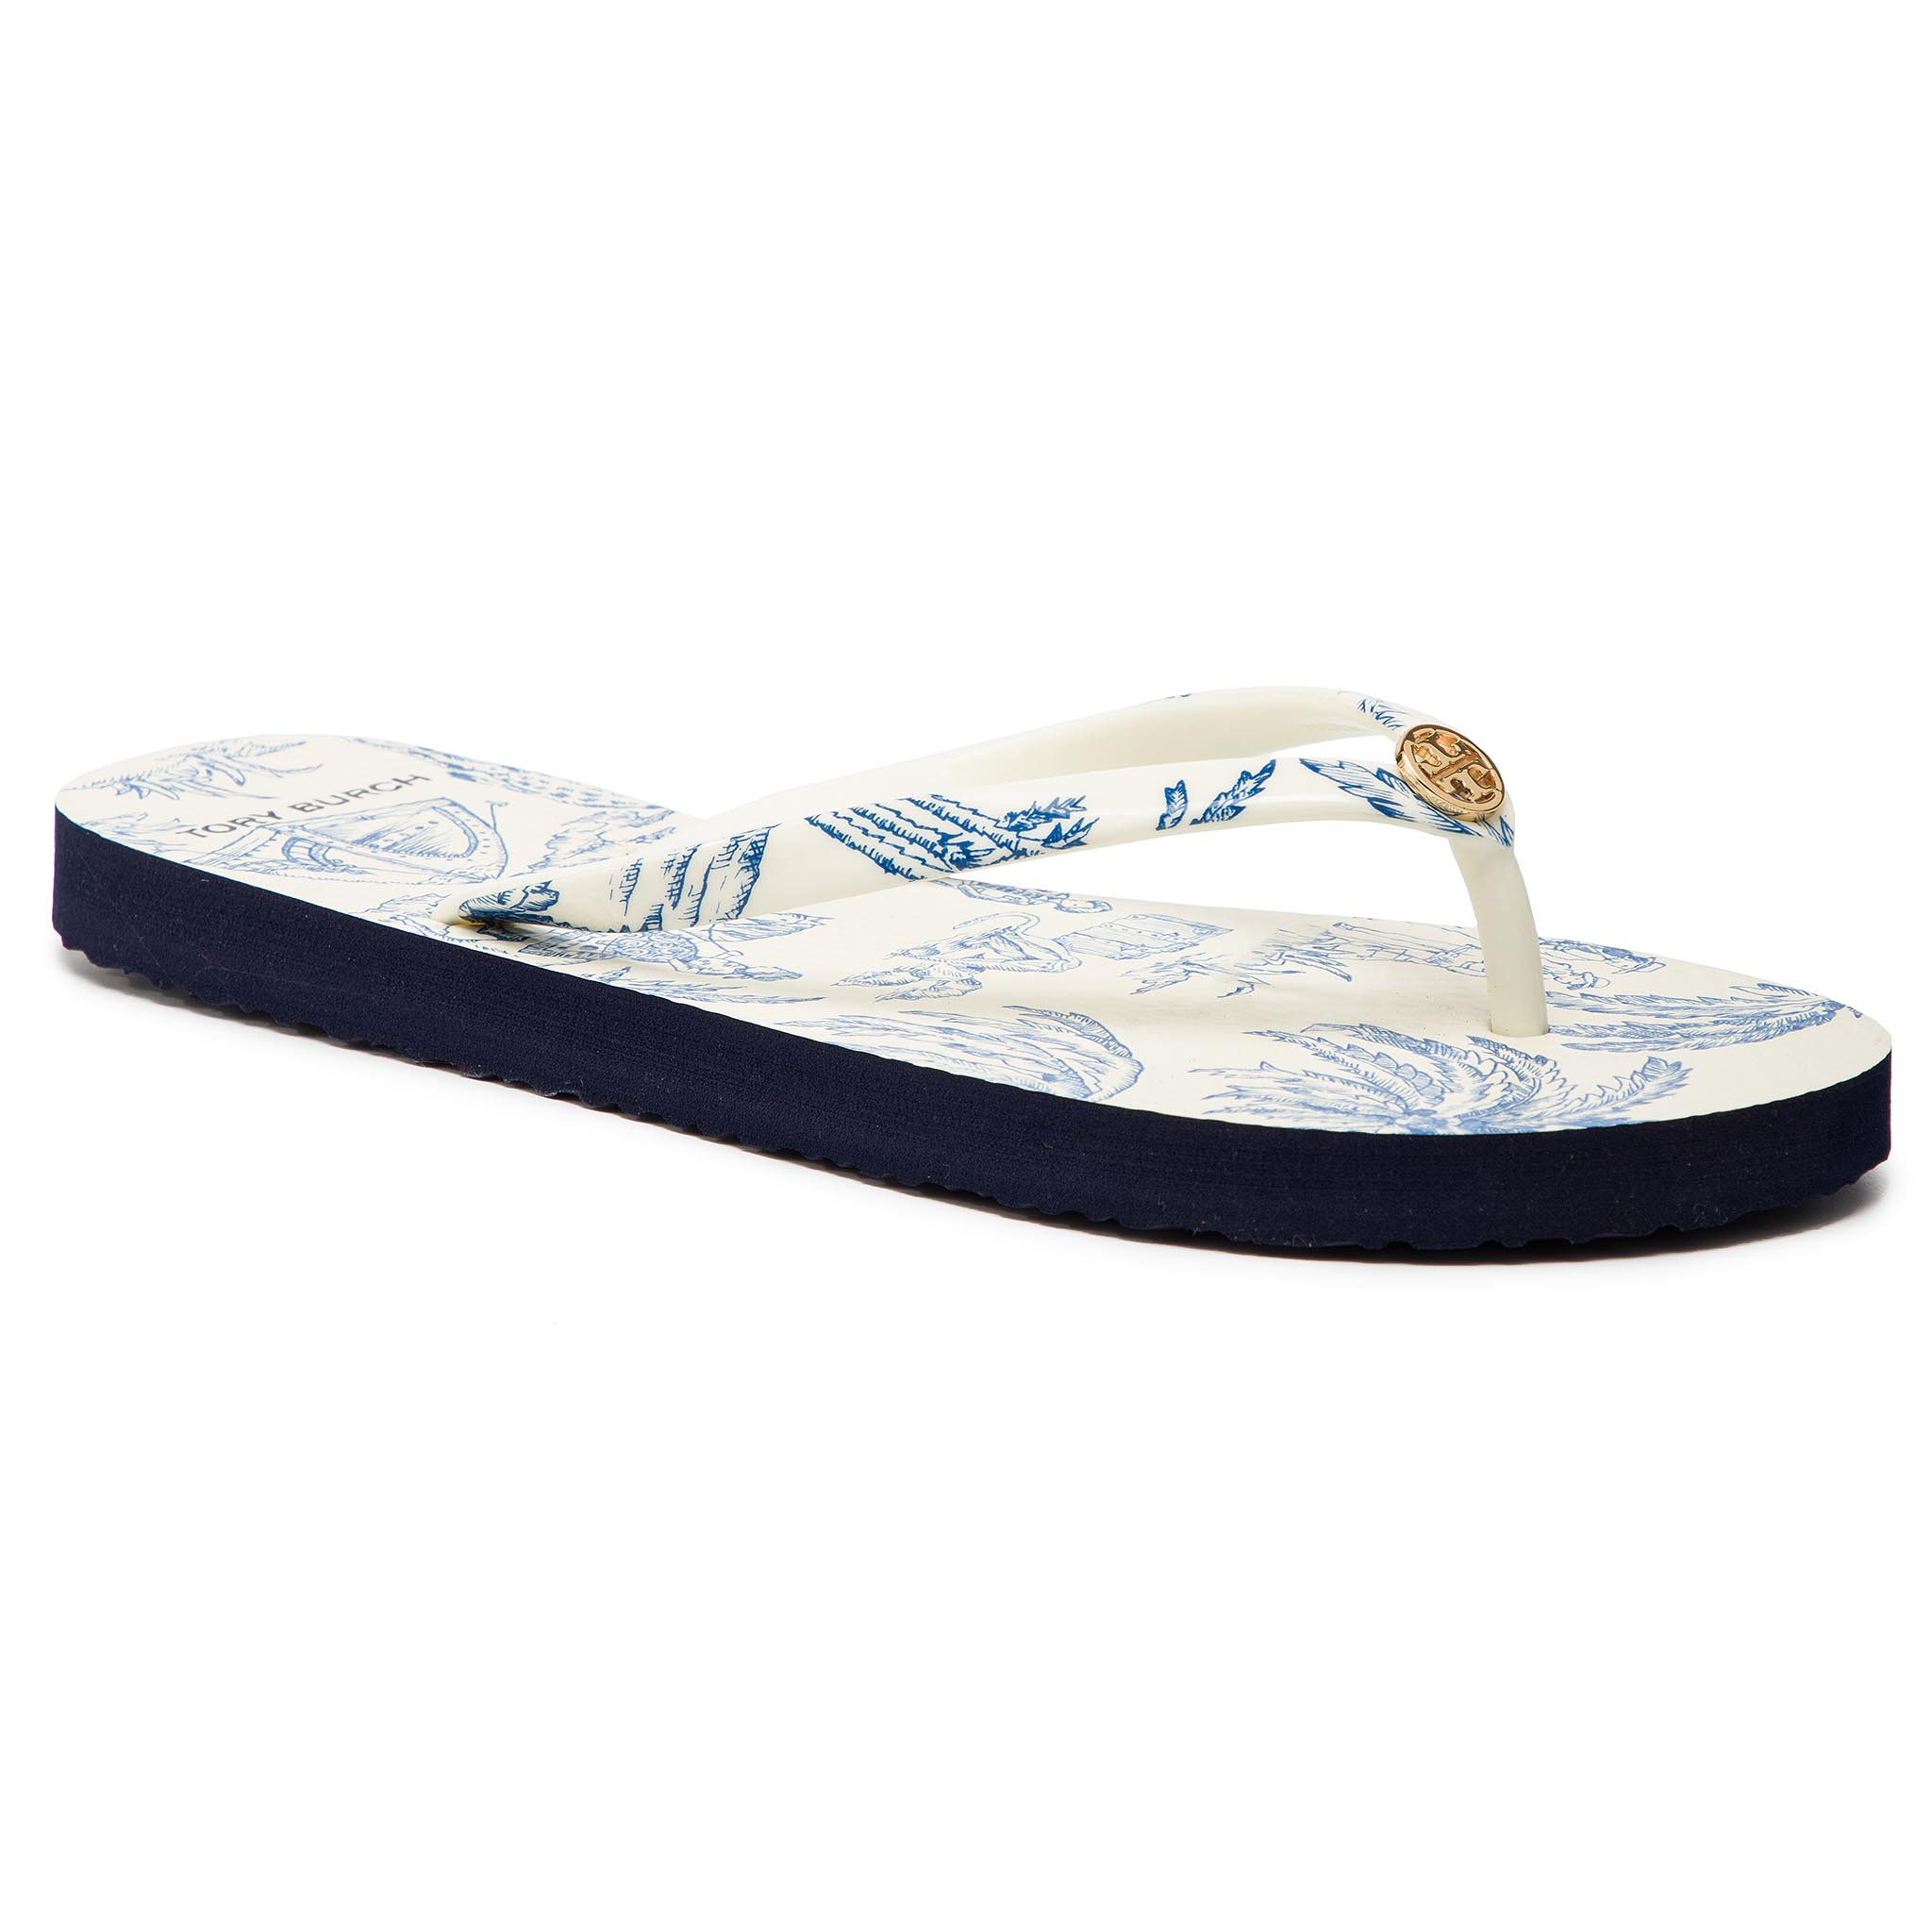 Flip flop TORY BURCH - Printed Thin Flip Flop 56487 Ivory Far And Away 415